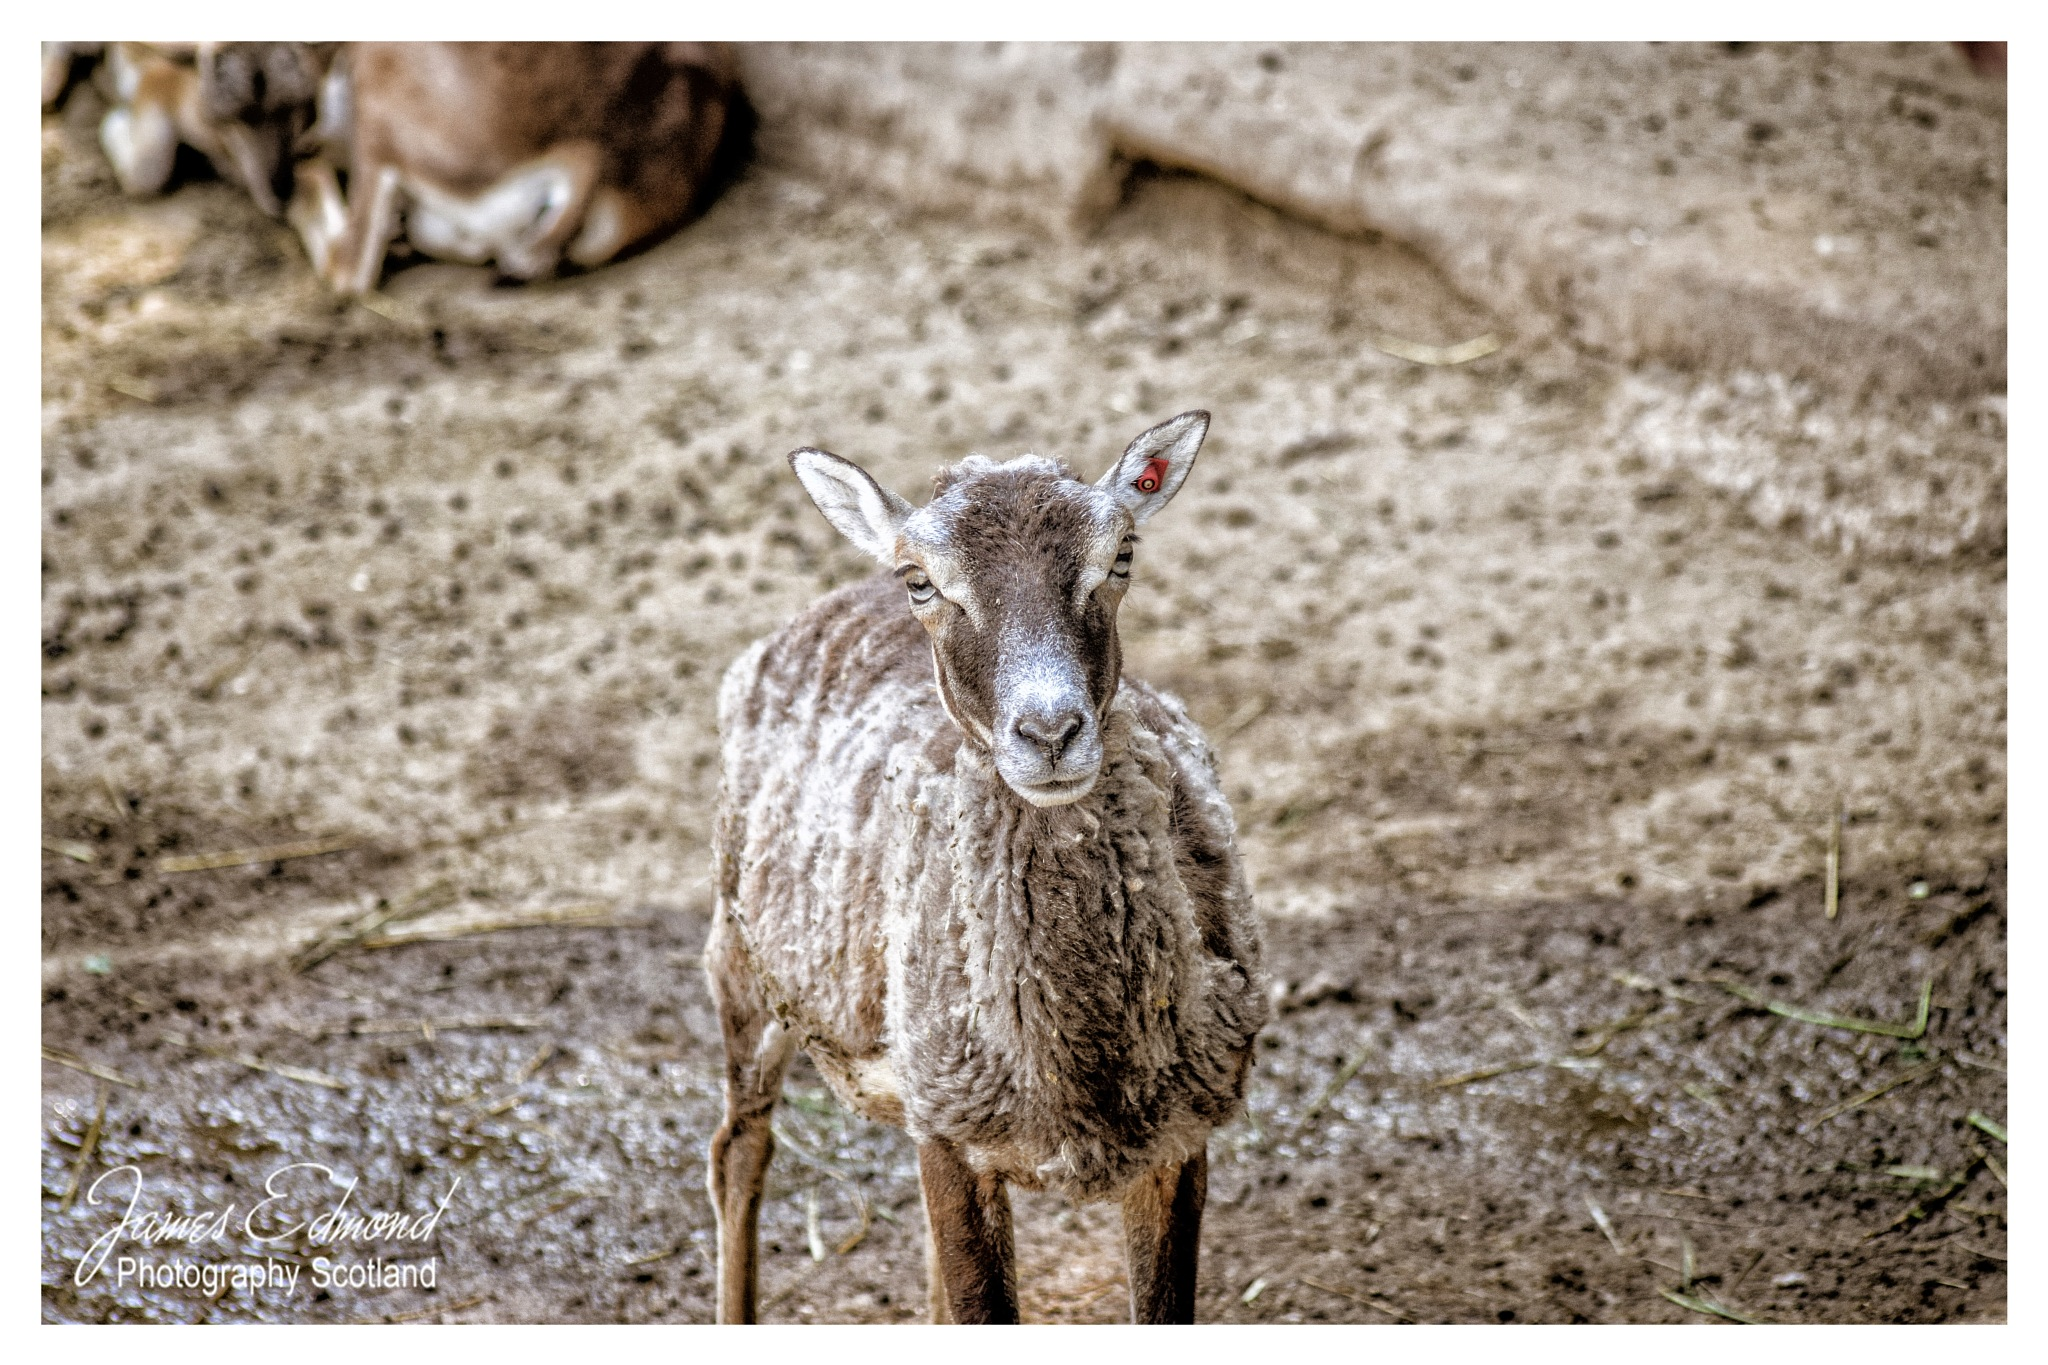 Barbary Sheep by James Edmond Photography